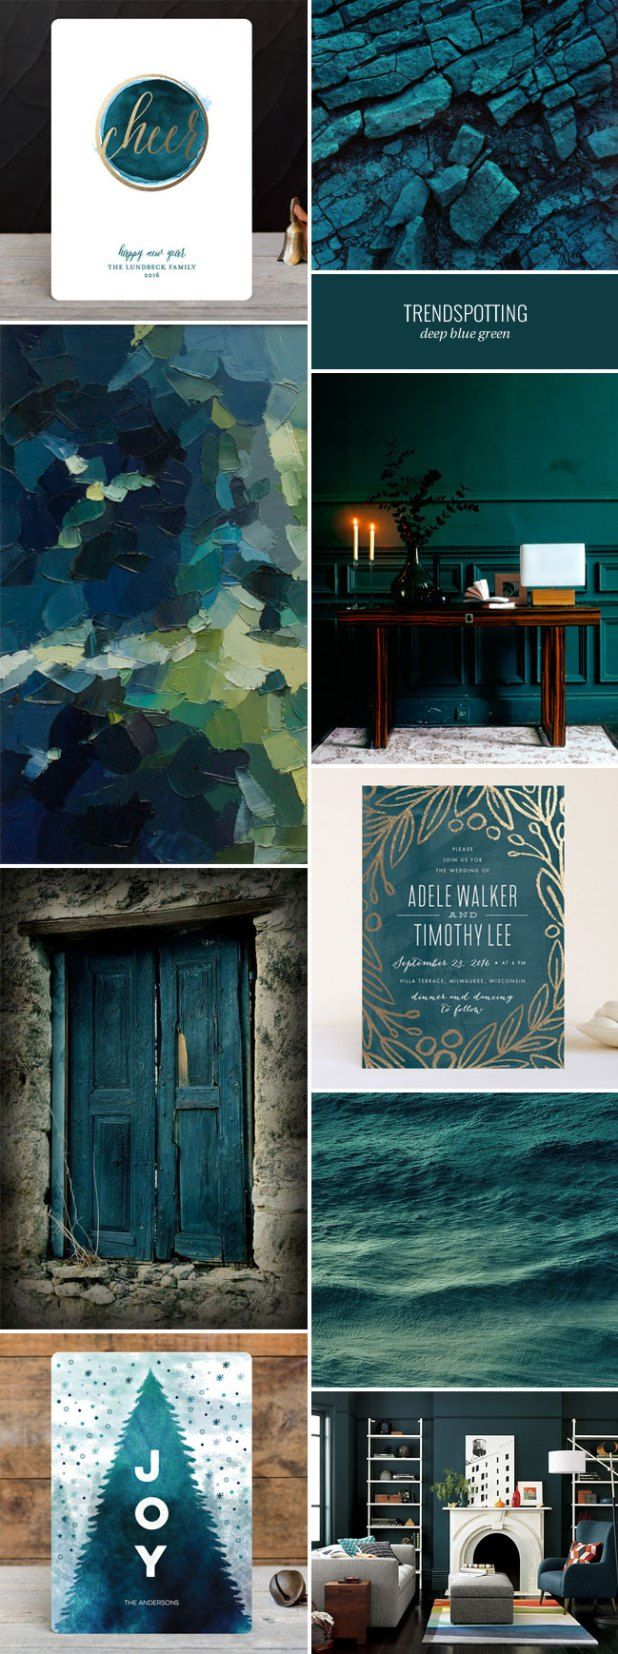 Your chosen color or size is sold out see below for eventual - 2016 Stationery Color Trends Deep Blue Green